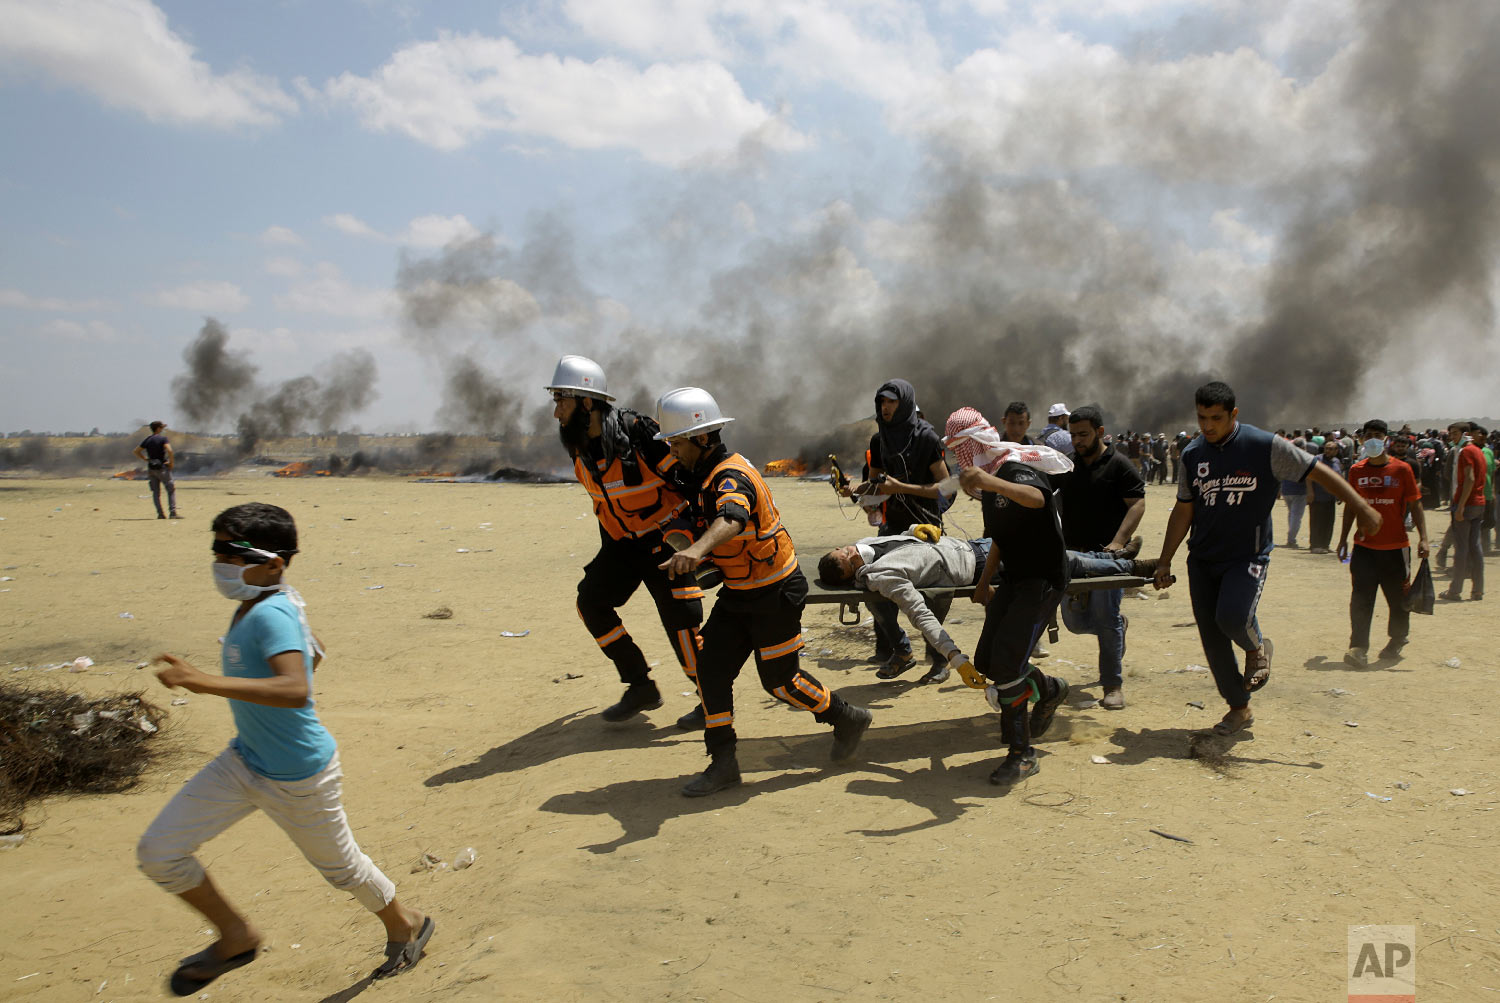 Palestinian medics and protesters evacuate a wounded youth during a protest at the Gaza Strip's border with Israel, east of Khan Younis, Gaza Strip, Monday, May 14, 2018. (AP Photo/Adel Hana)